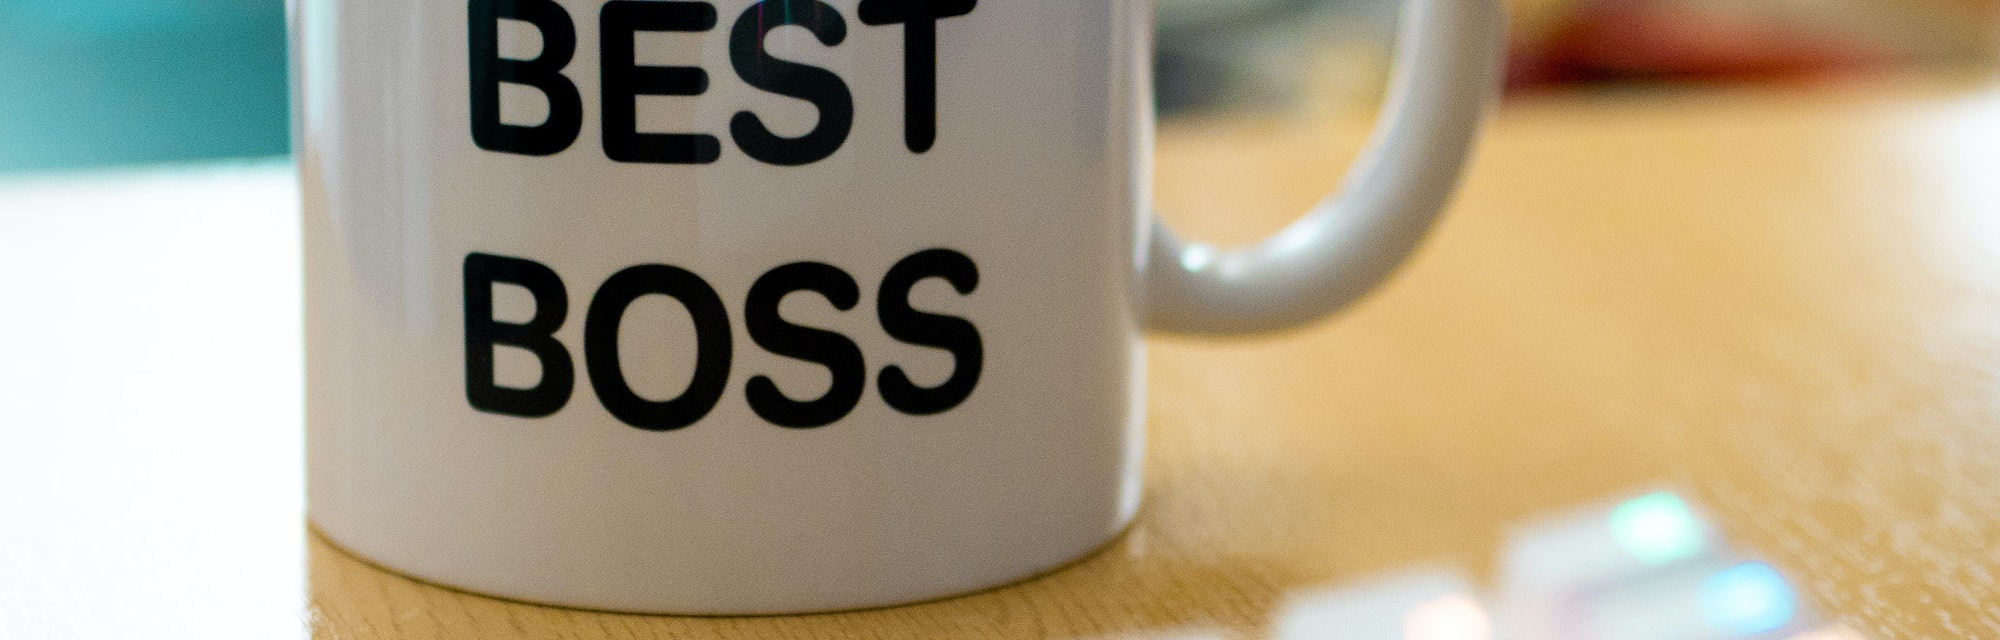 world's best boss mug near to colourful rgb keyboard